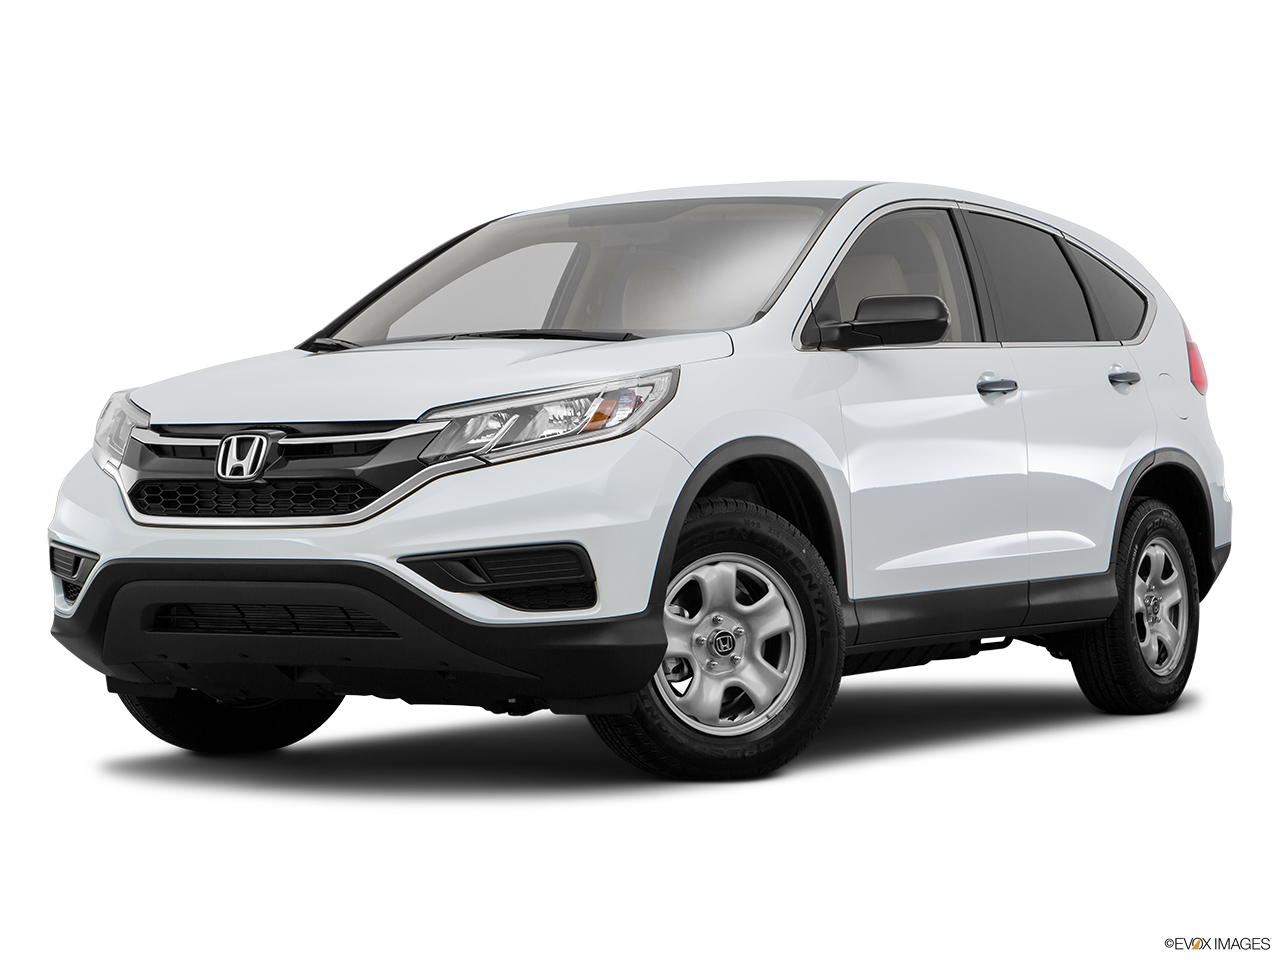 Cheapest Car To Lease Canada >> Lease a 2018 Honda CR-V LX CVT 2WD in Canada | Canada ...